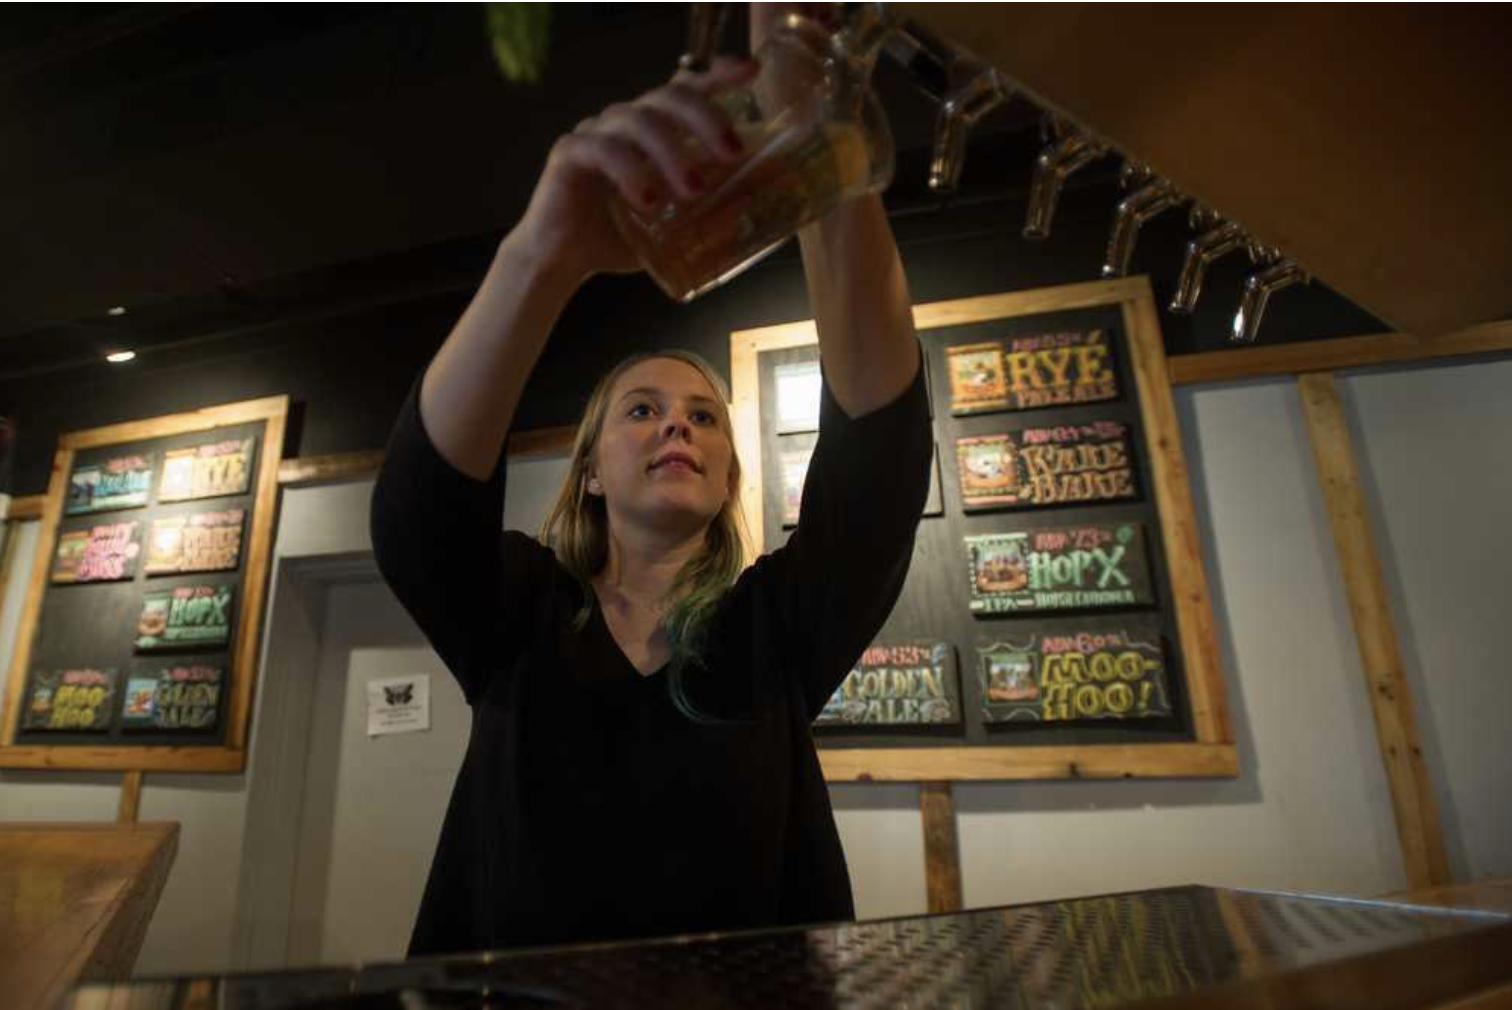 Terrapin brewery opens new tasting room - OnlineAthens | January 24, 2015